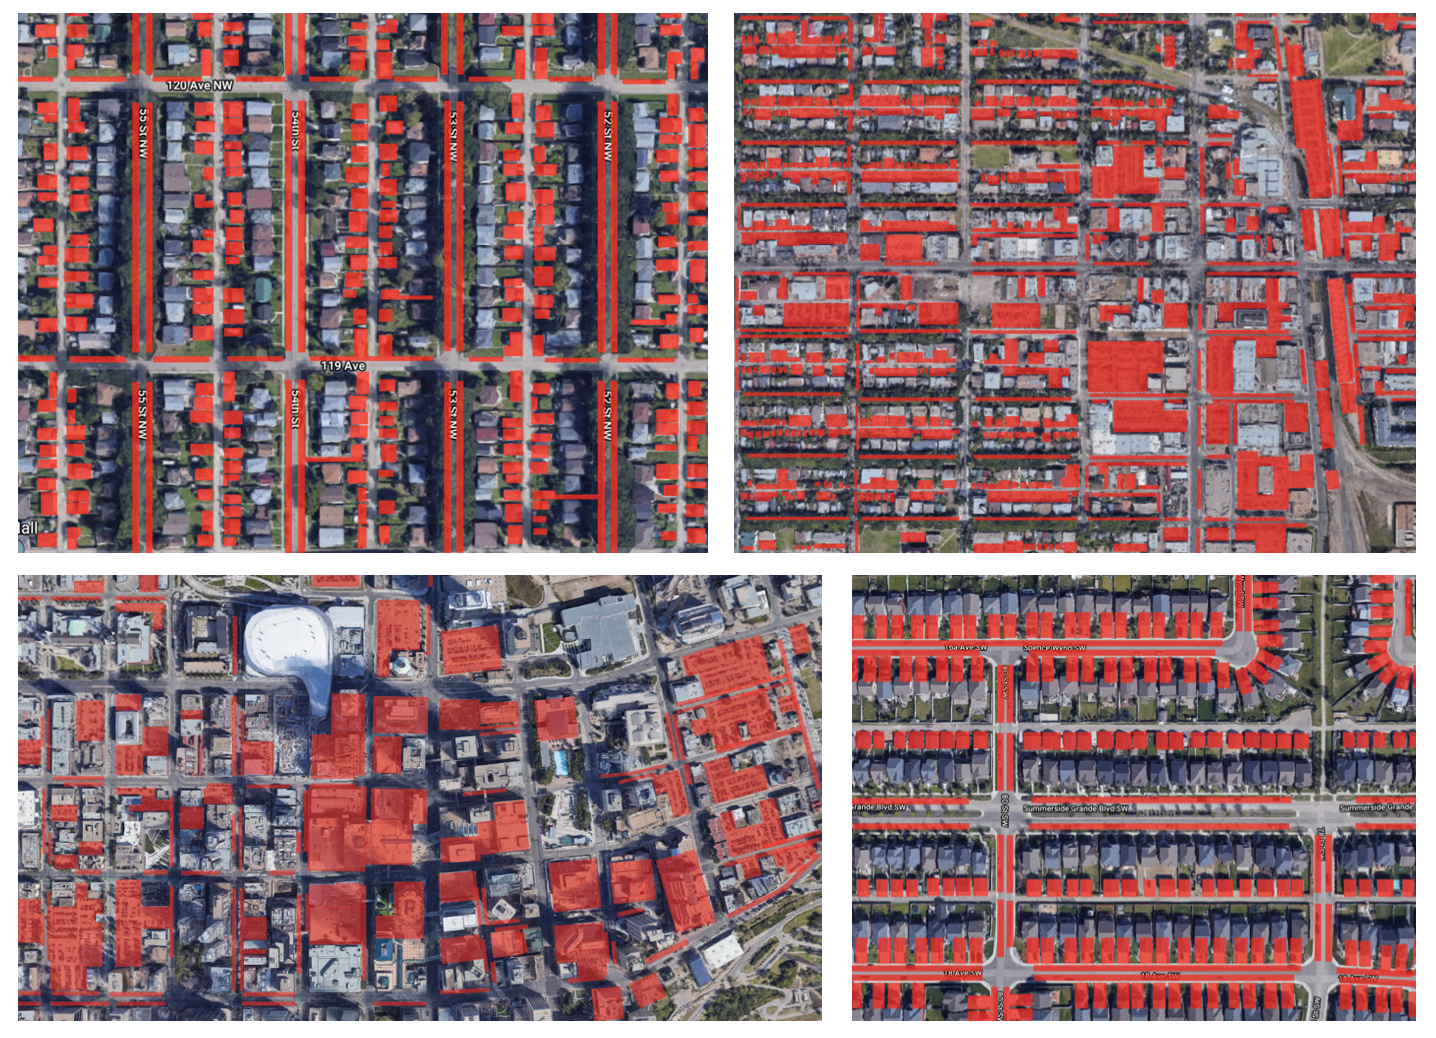 Figure 1: Areas in red show space allocated to parking in different locations in Edmonton. From top left to bottom right: mature neighborhood, Strathcona, Downtown, developing neighborhood/suburb. Image source.